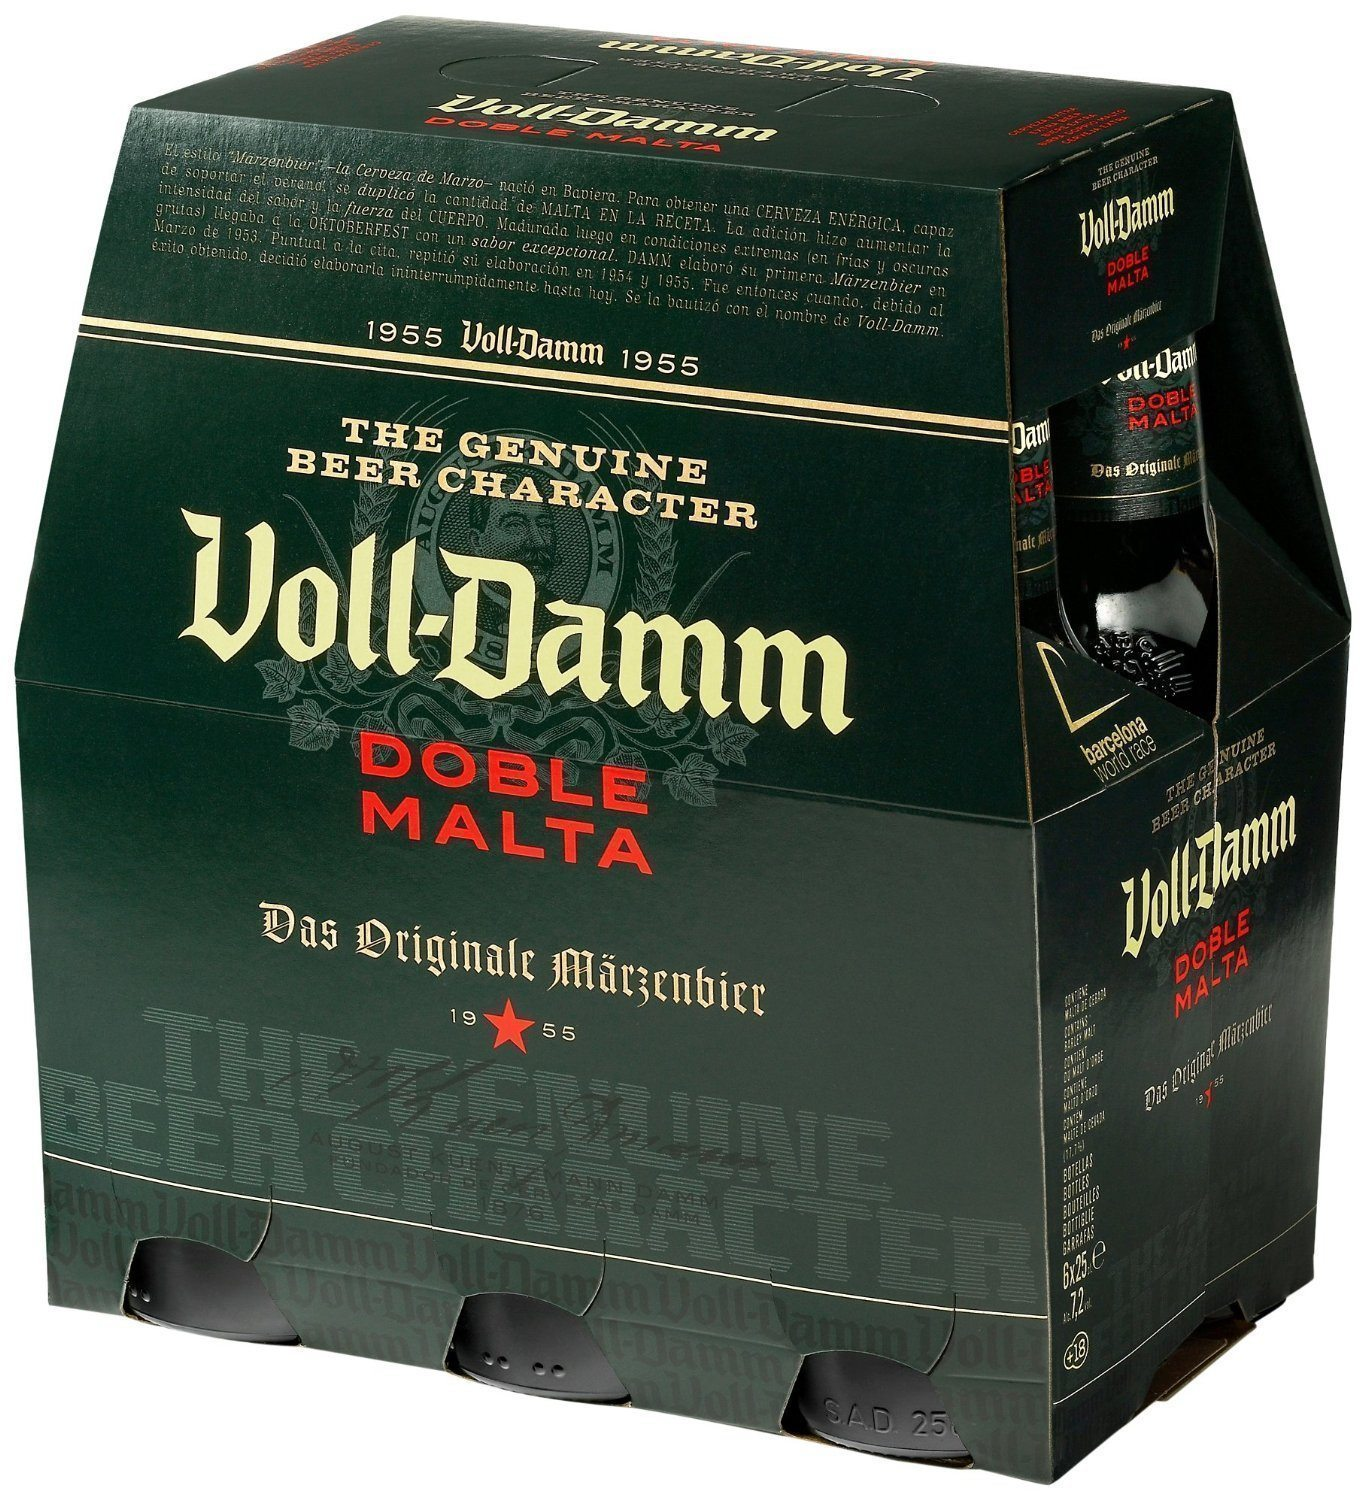 Voll damm v.d. voll damm pack 6 botella 25 cl